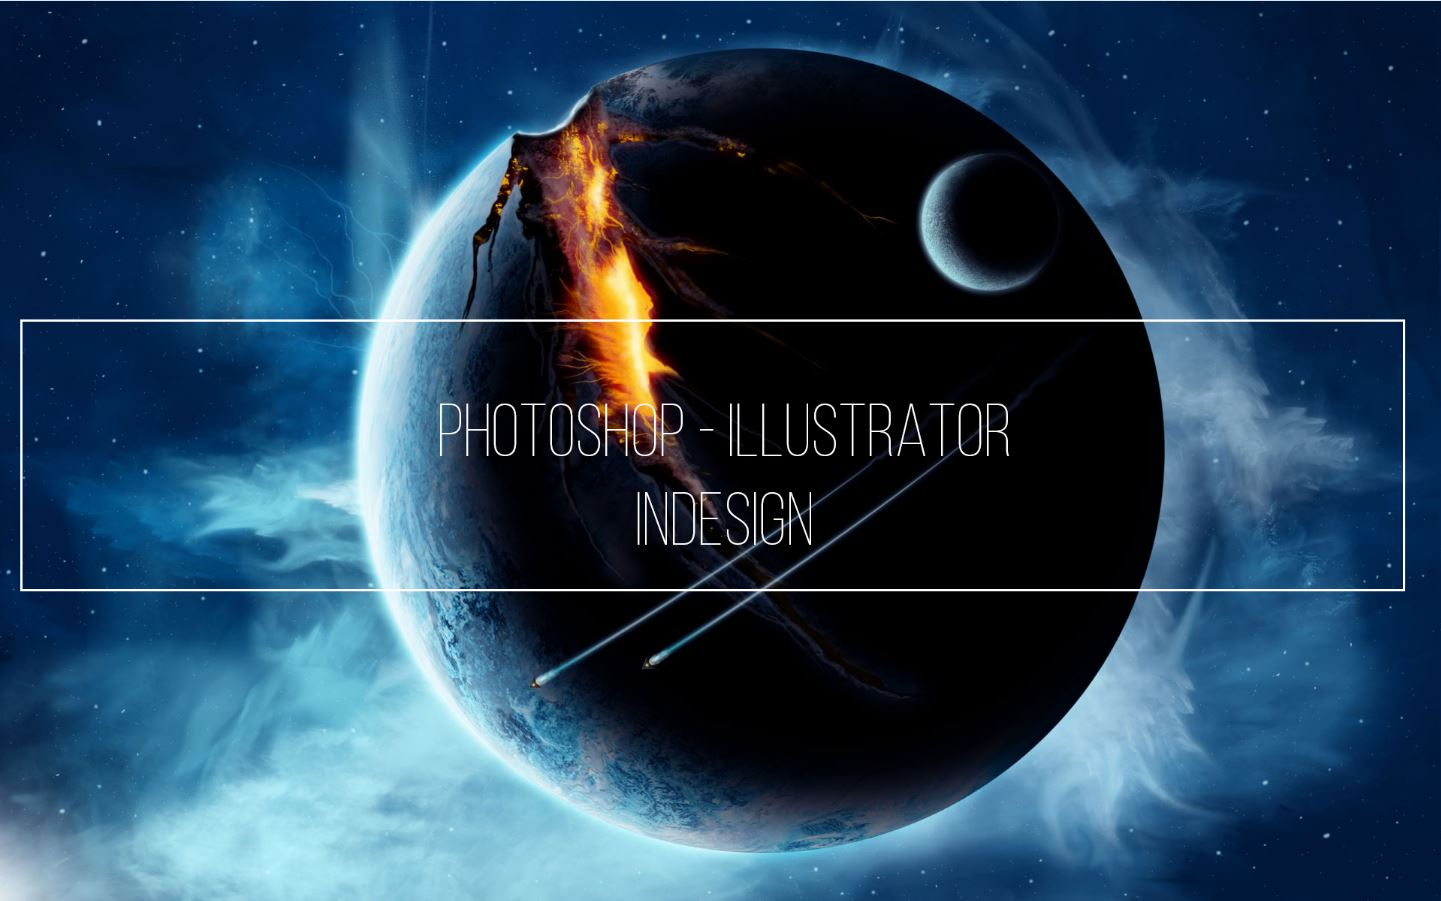 photoshop-illustrator-indesign-1